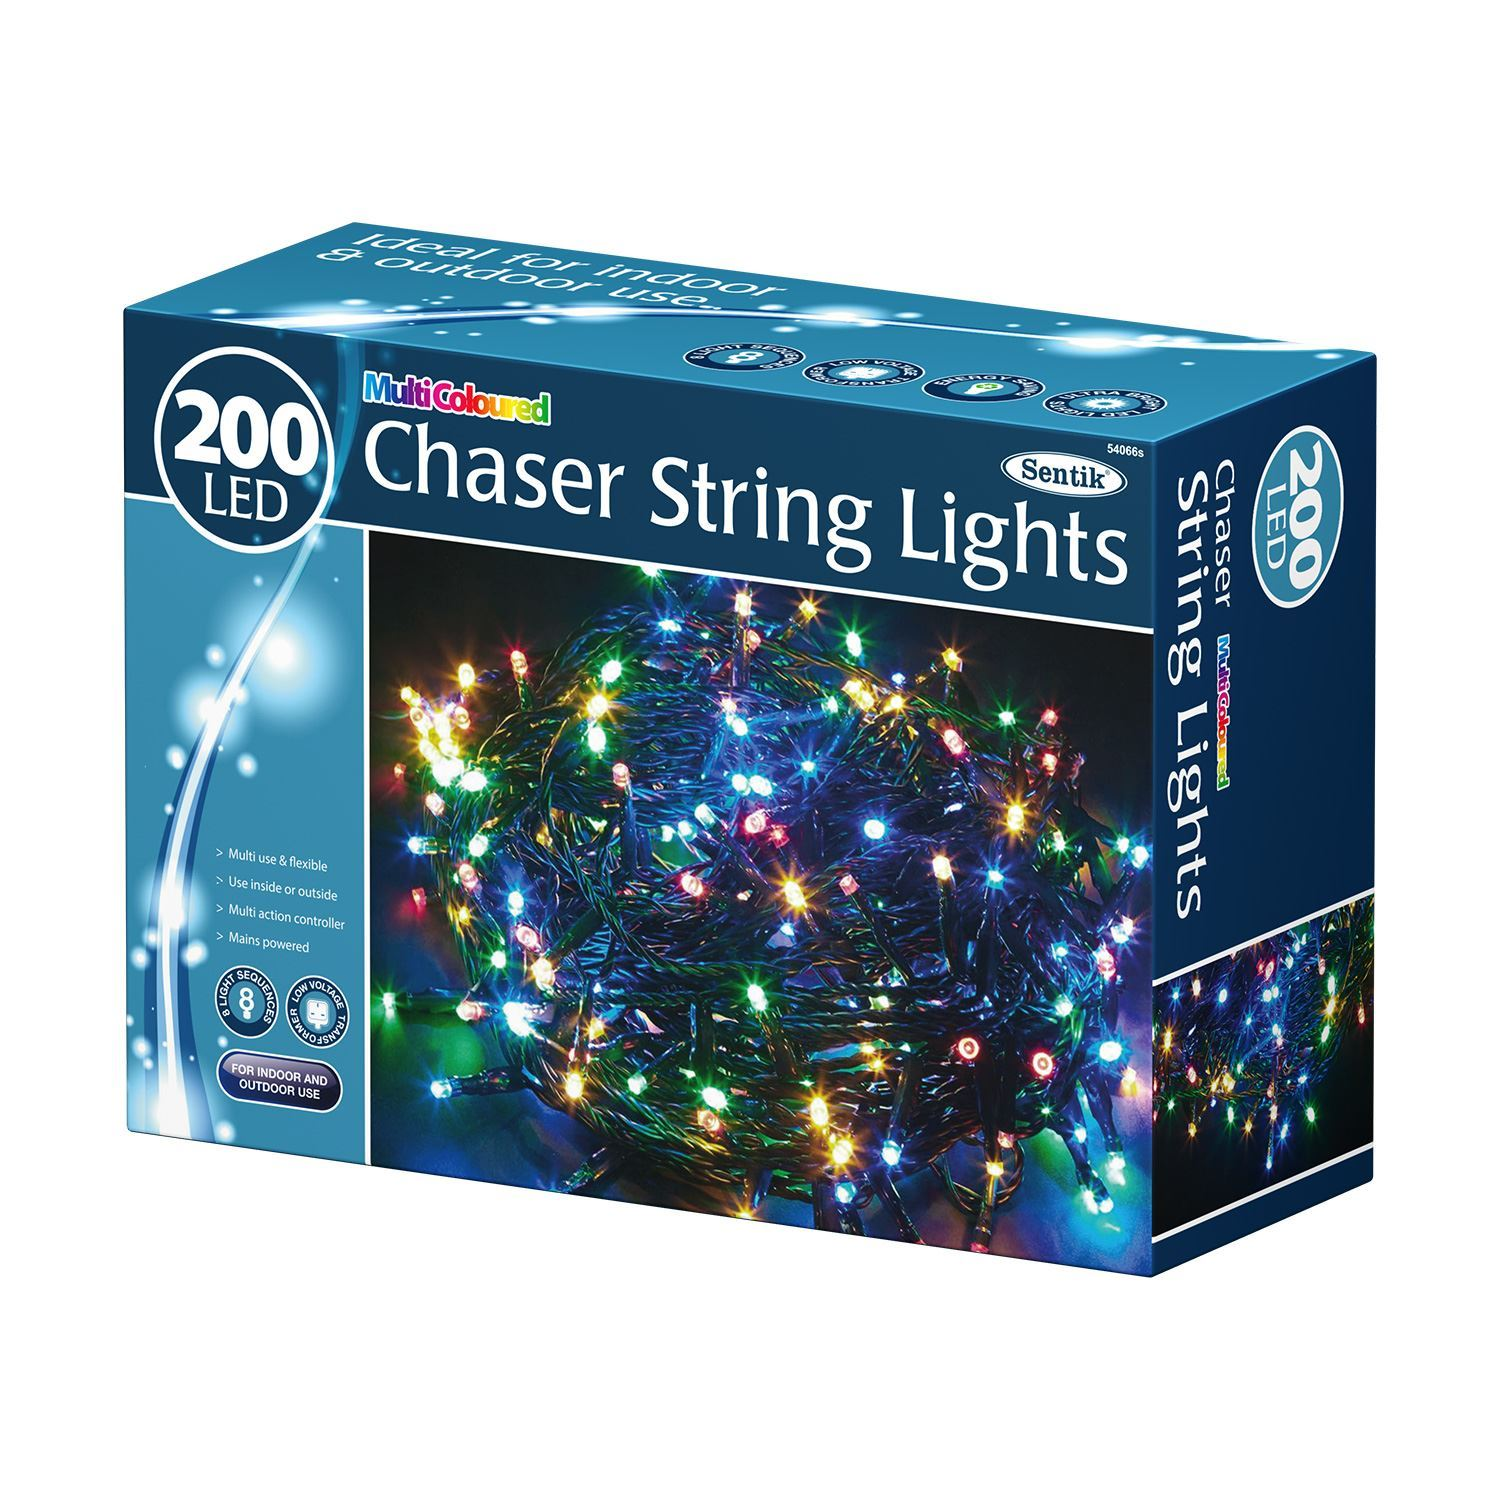 100/200/400 Led Chaser String Fairy Indoor Outdoor Lights